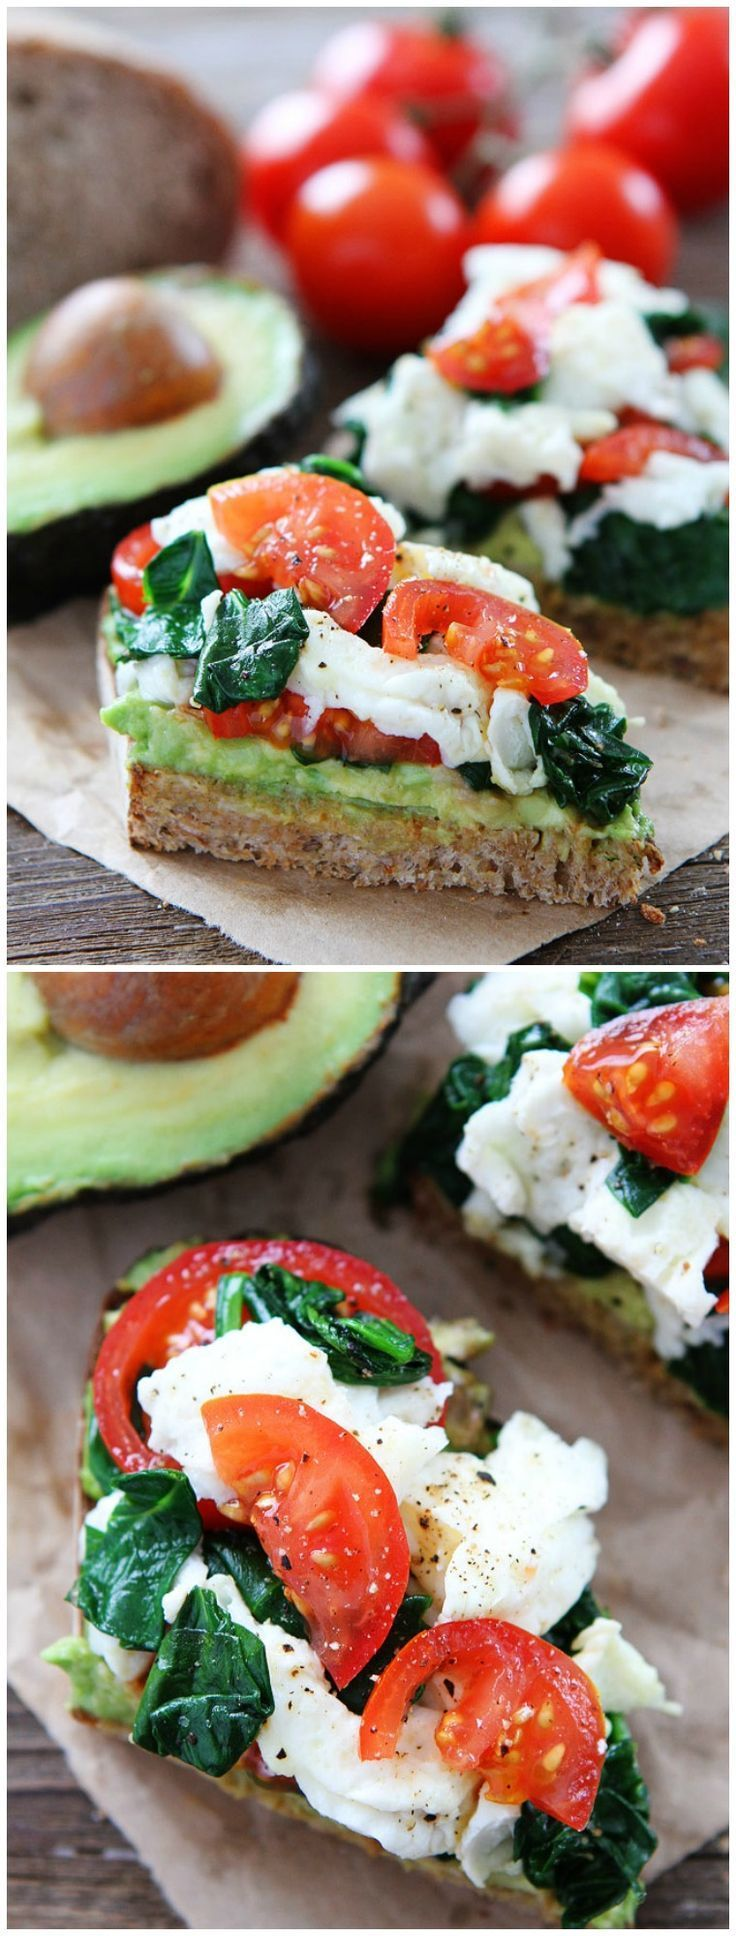 Avocado Toast with Eggs, Spinach, and Tomatoes. This easy and healthy recipe is great for breakfast, lunch, dinner, or snack time!